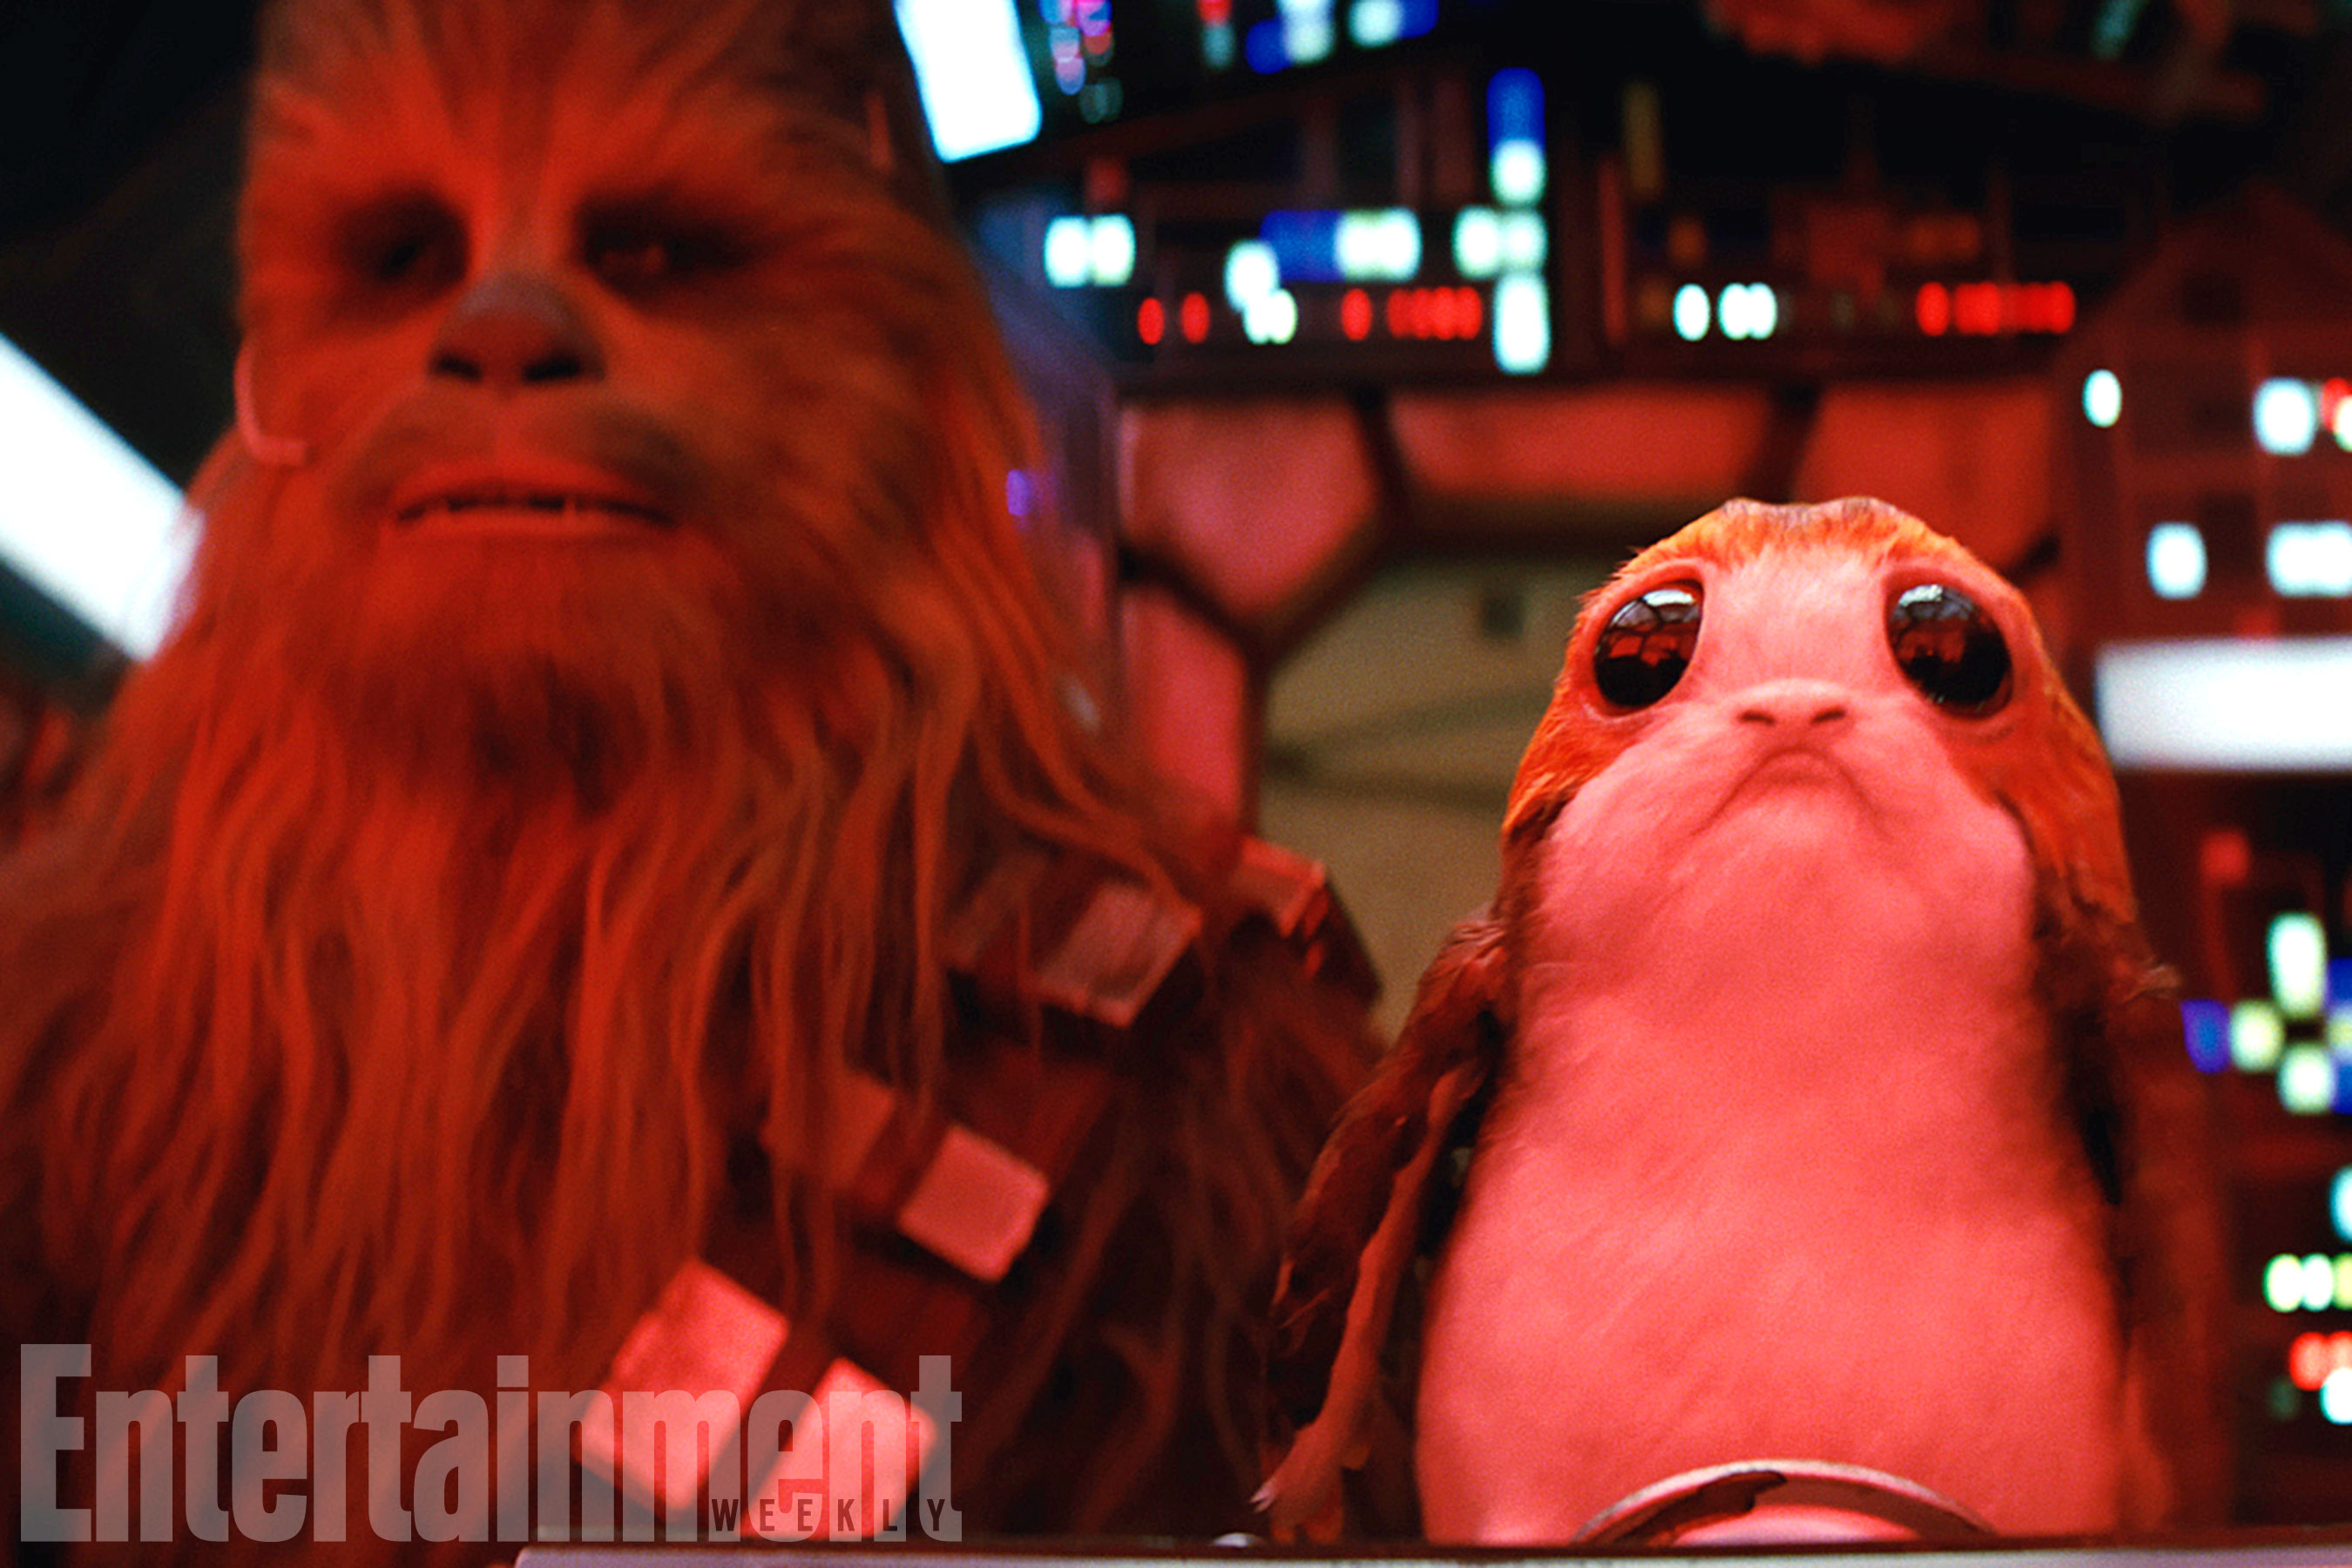 Star Wars: The Last Jedi L to R: Chewbacca (Joonas Suotamo) and a Porg